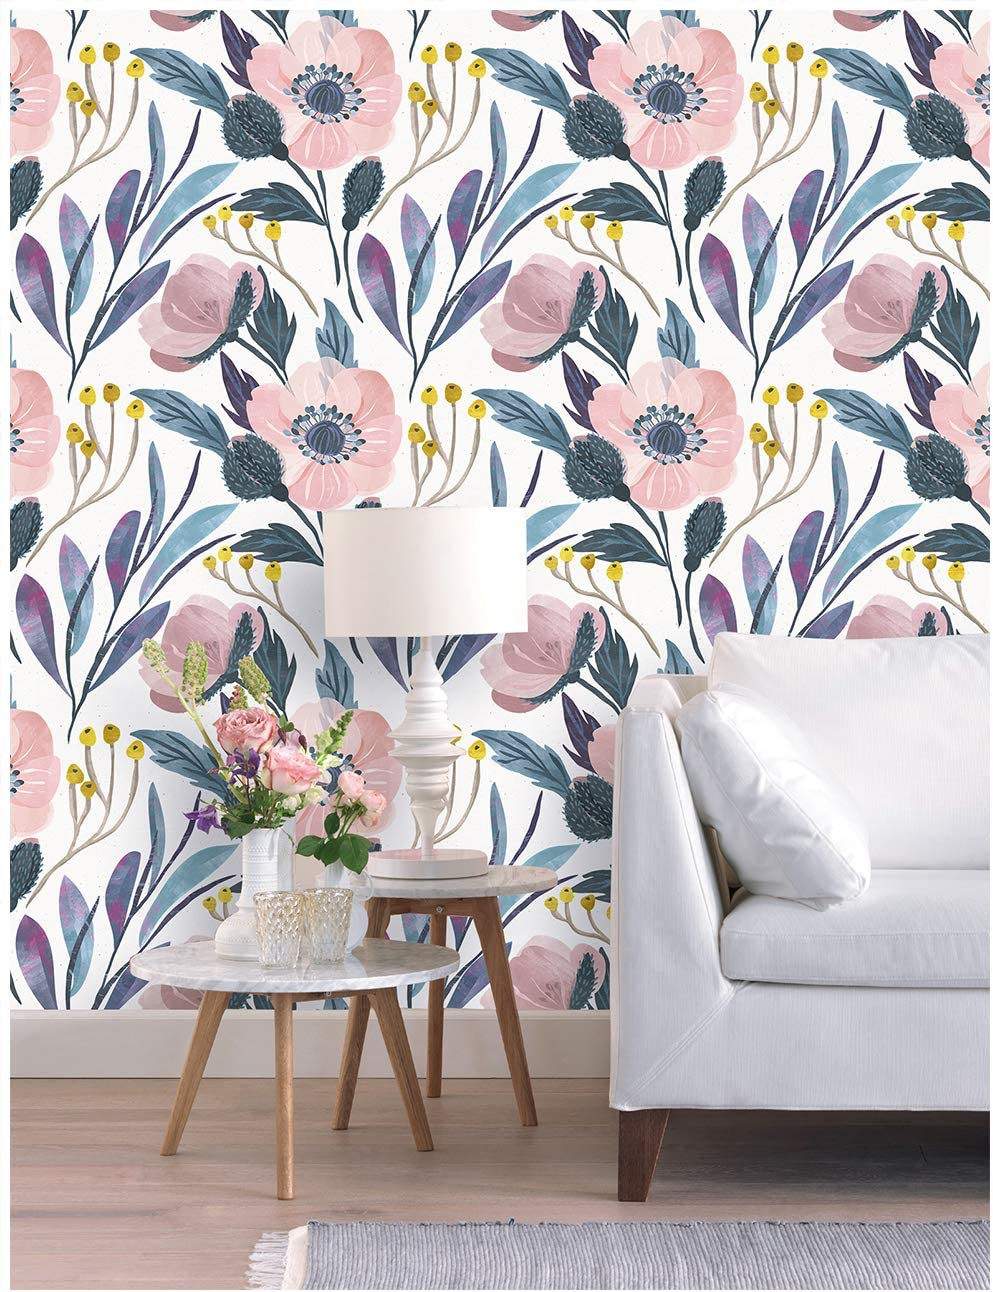 Haokhome 93019 Watercolor Peony Floral Peel And Stick Wallpaper